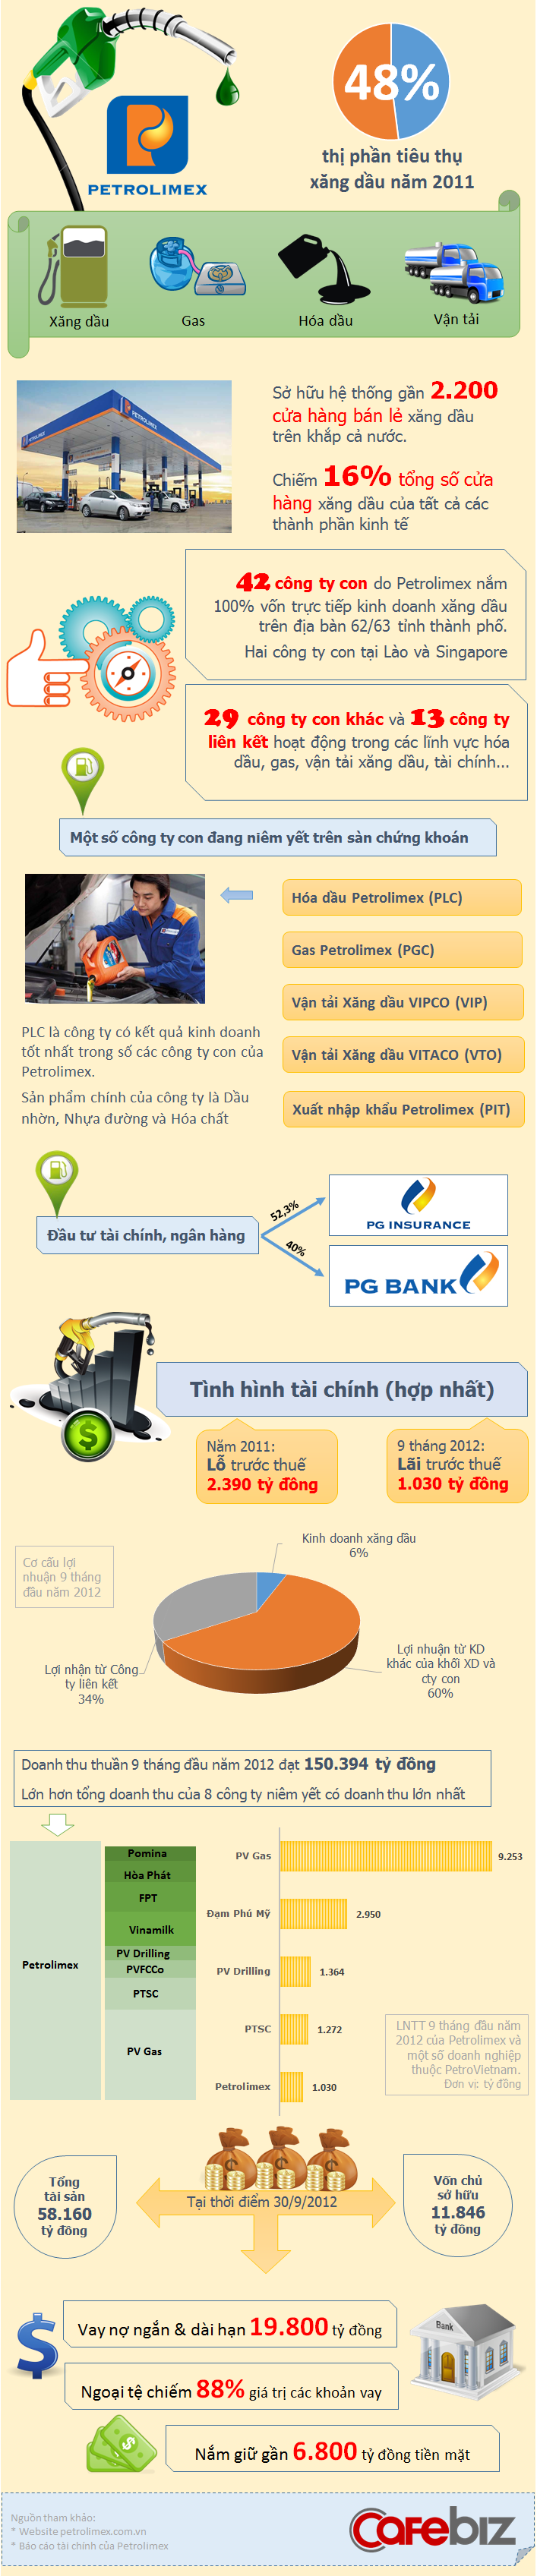 [Infographic] Những con số